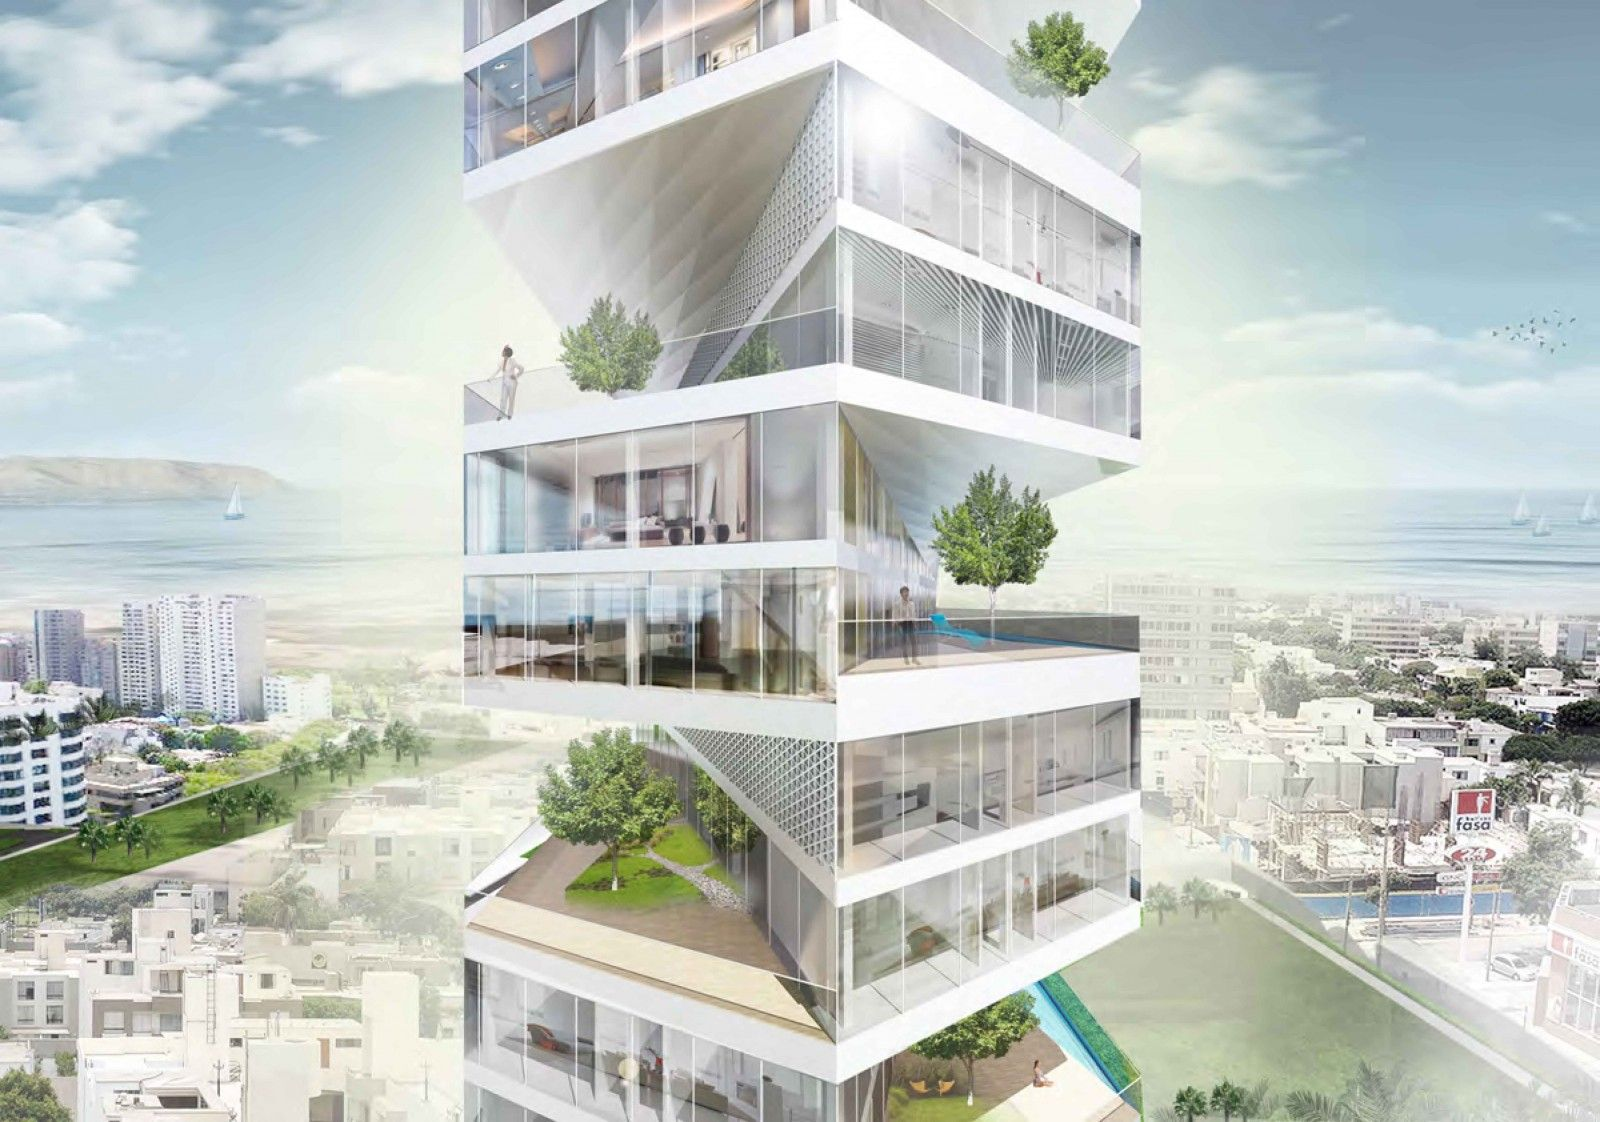 1000+ images about architecture on Pinterest - ^